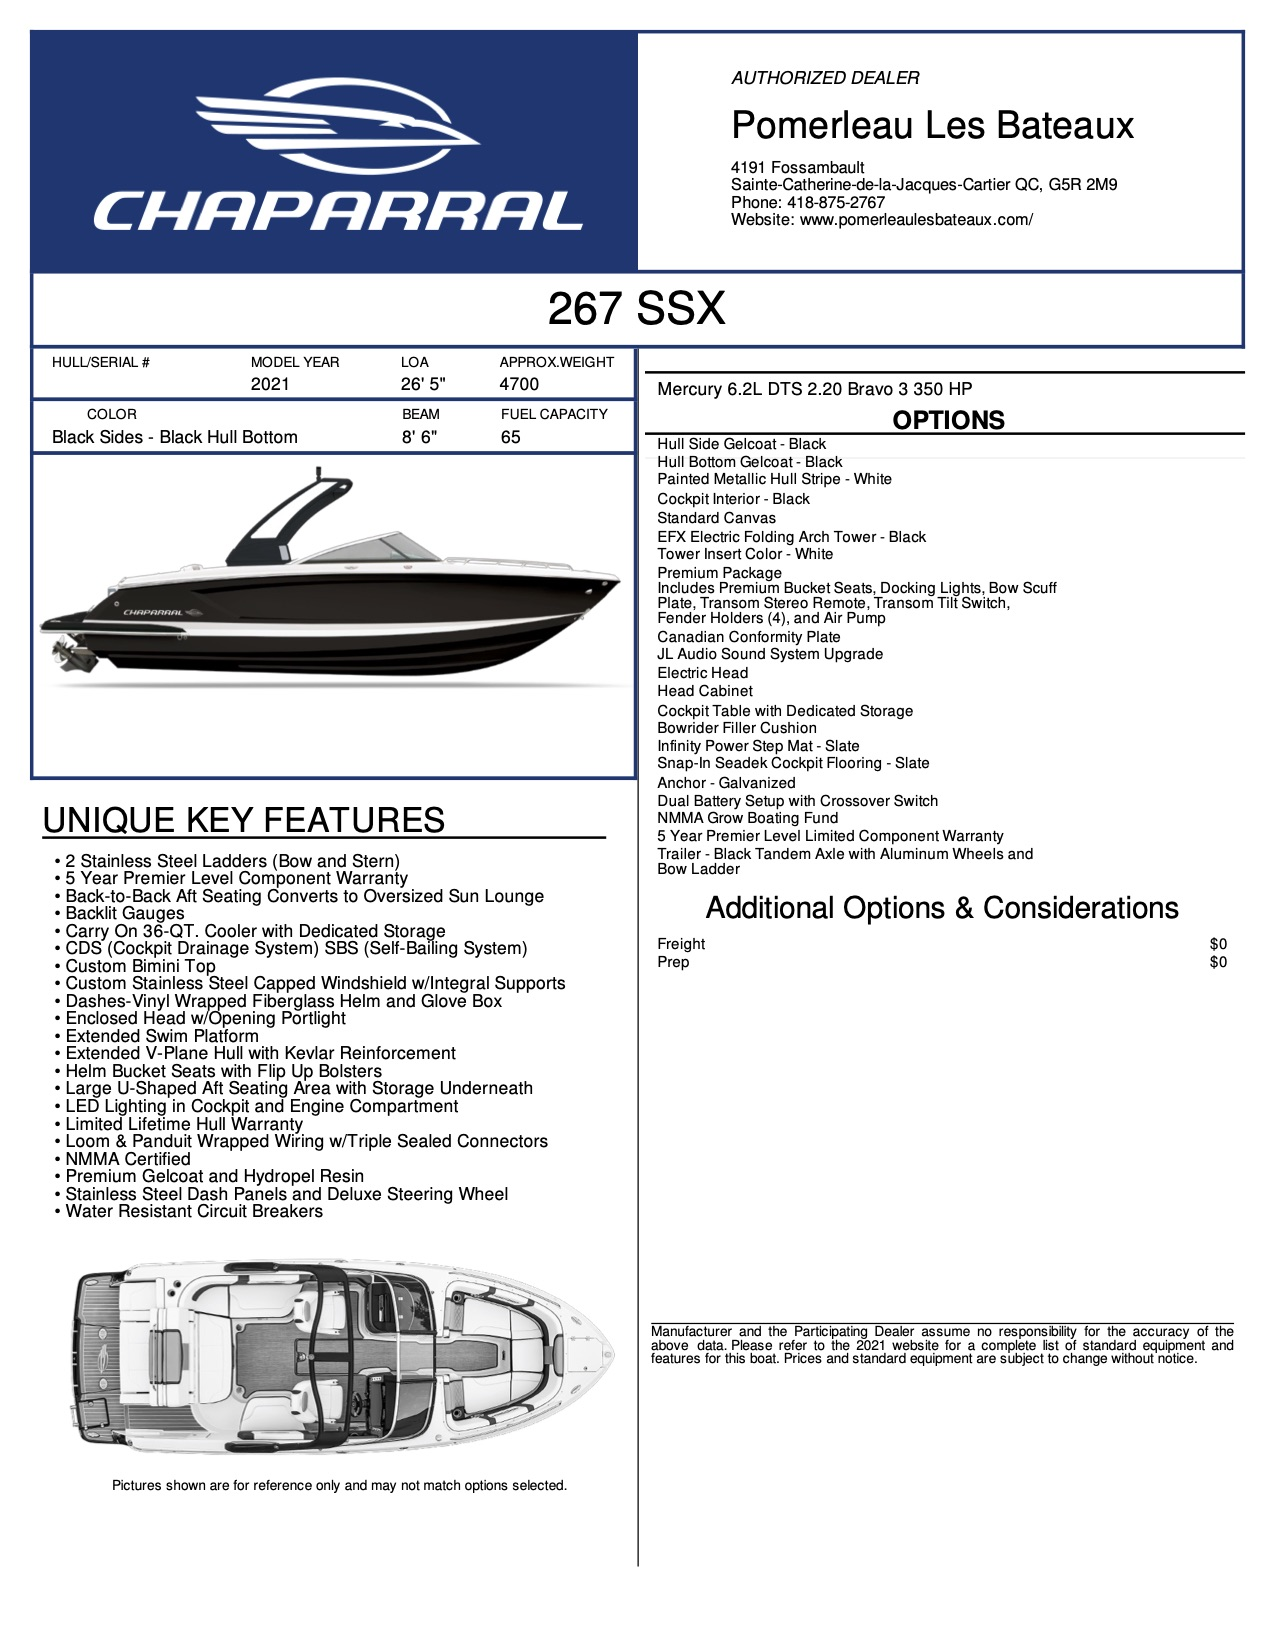 Chaparral 267 SSX - Chaparral-Boats-2021-267--Window-Sticker-301935